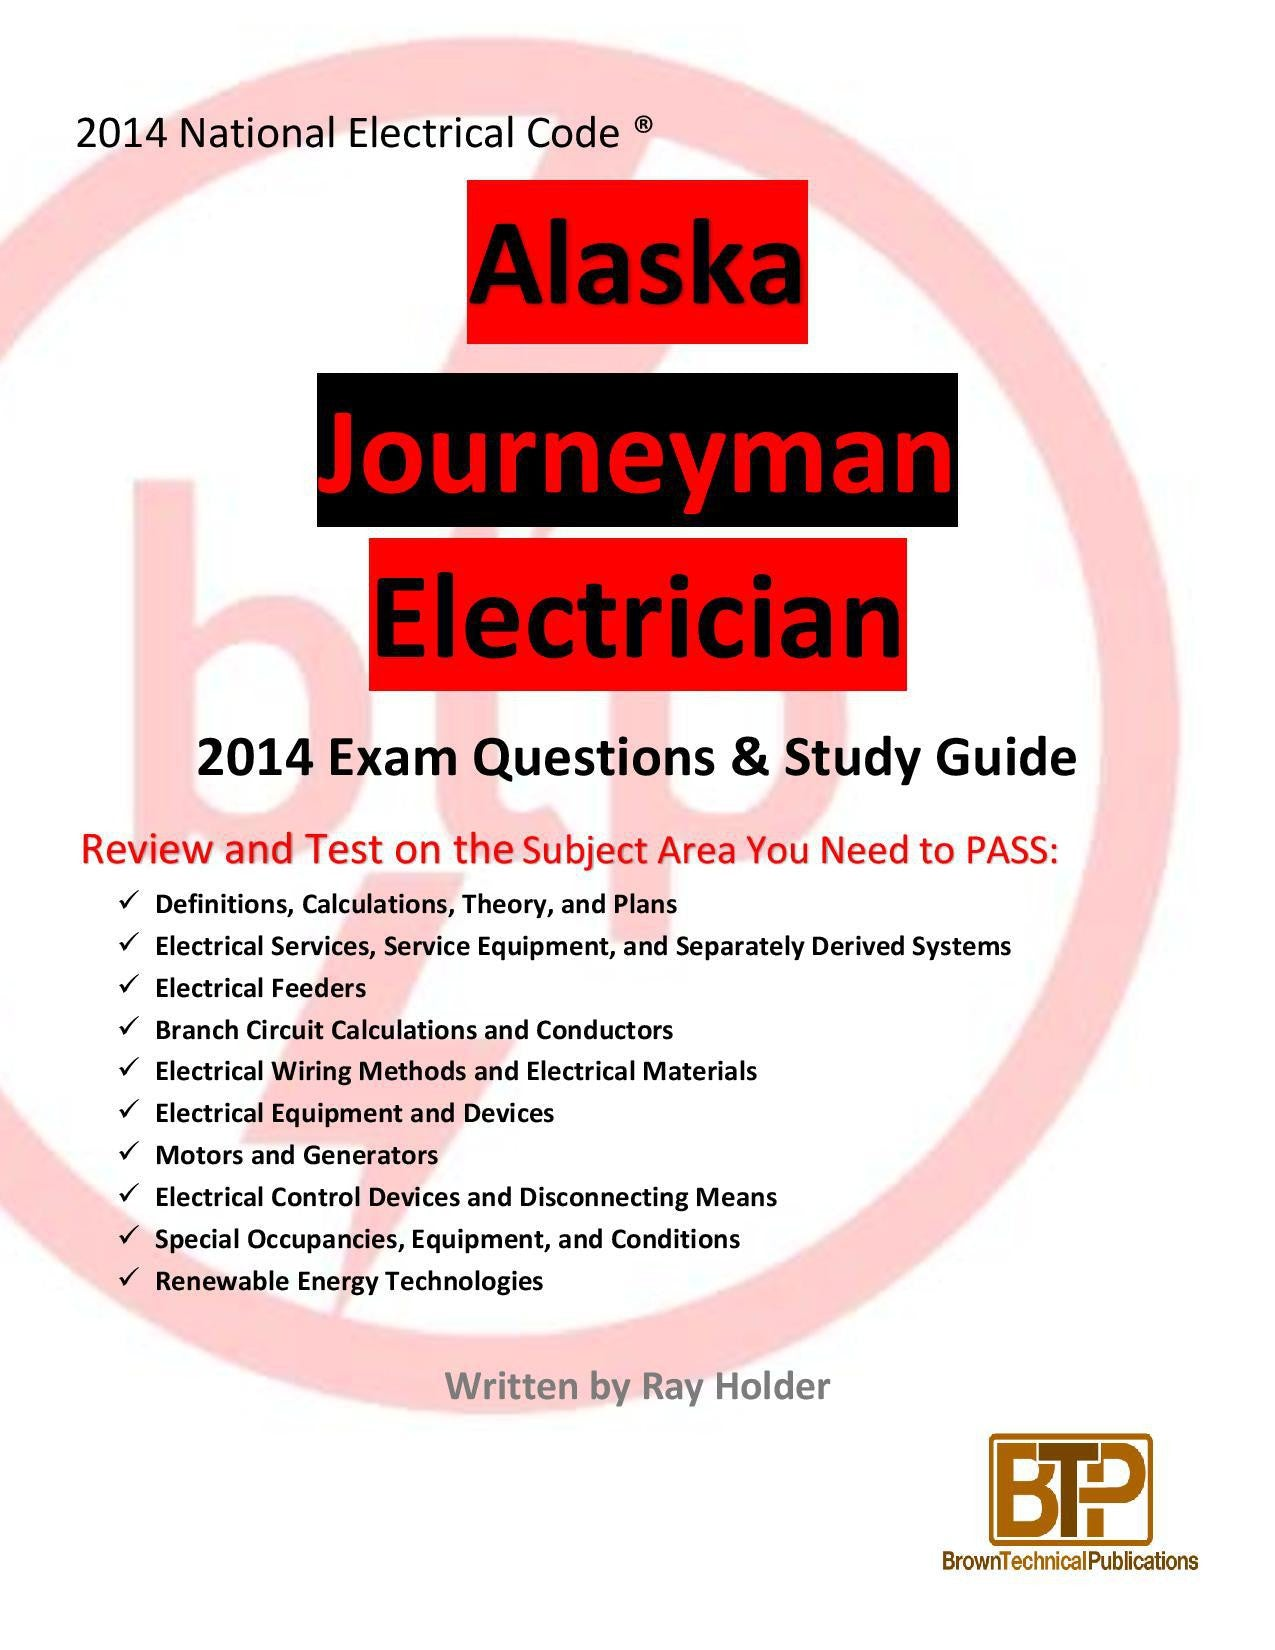 Alaska Journeyman Information